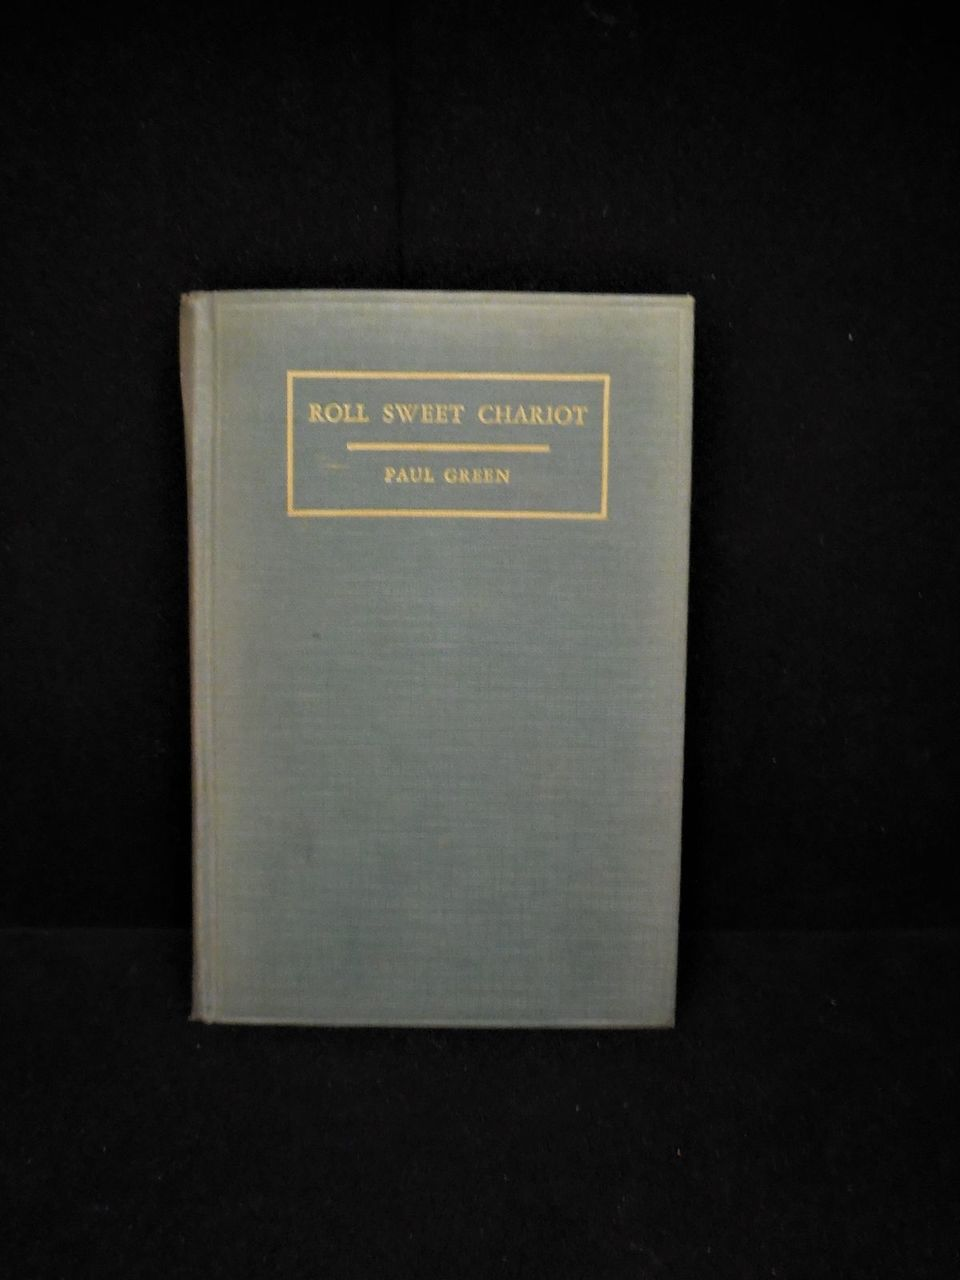 ROLL SWEET CHARIOT, by Paul Green - 1935